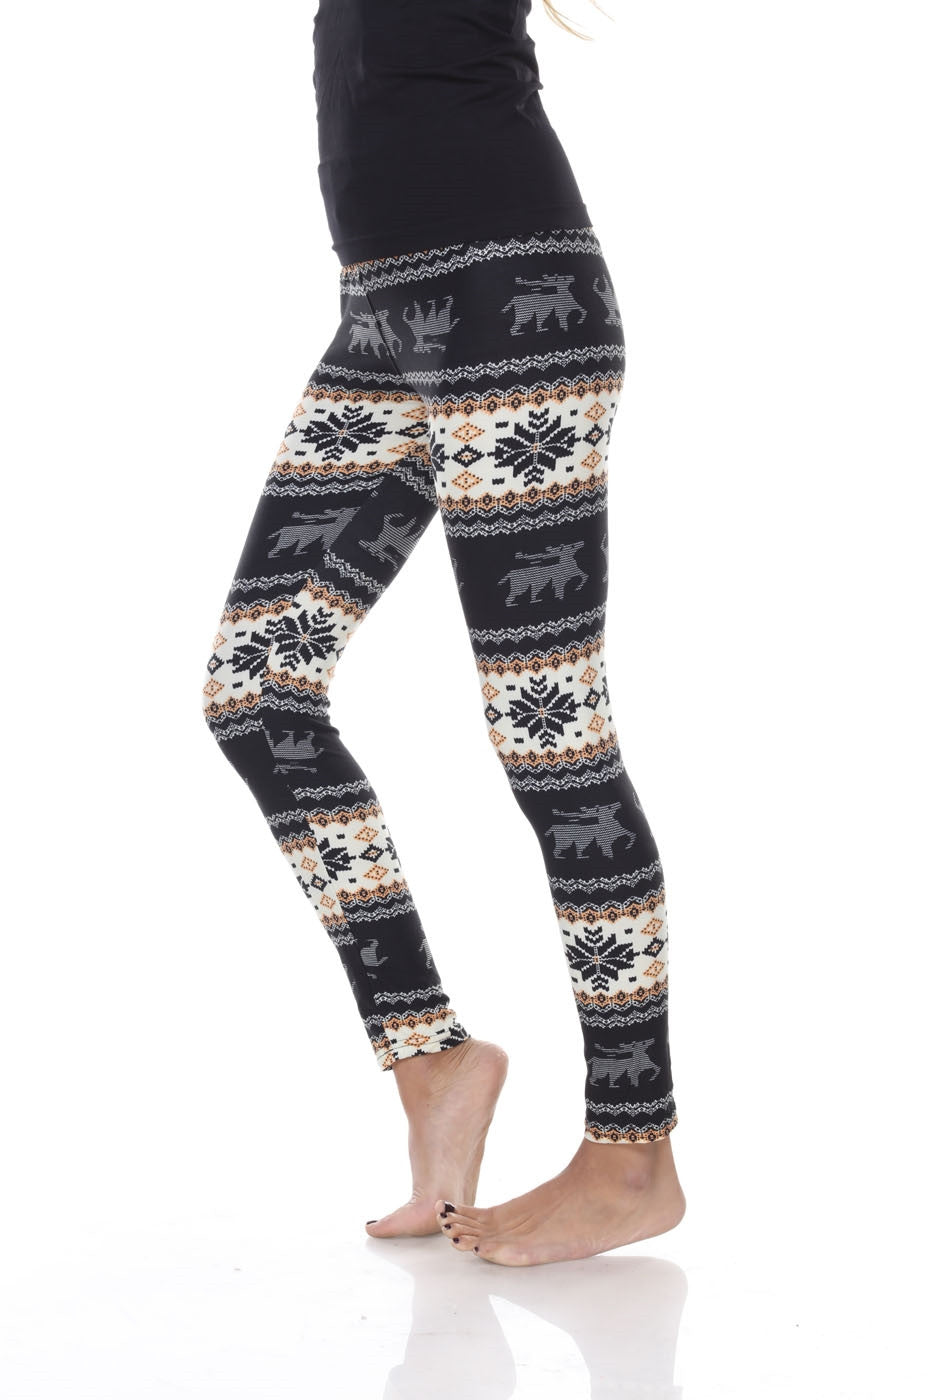 'Arapahoe Basin' Leggings